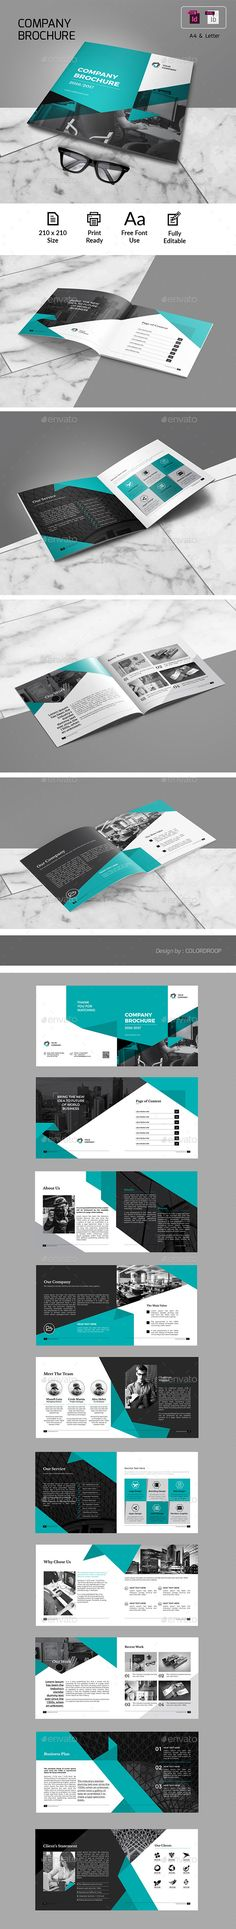 Company Profile Square Brochure Template InDesign INDD